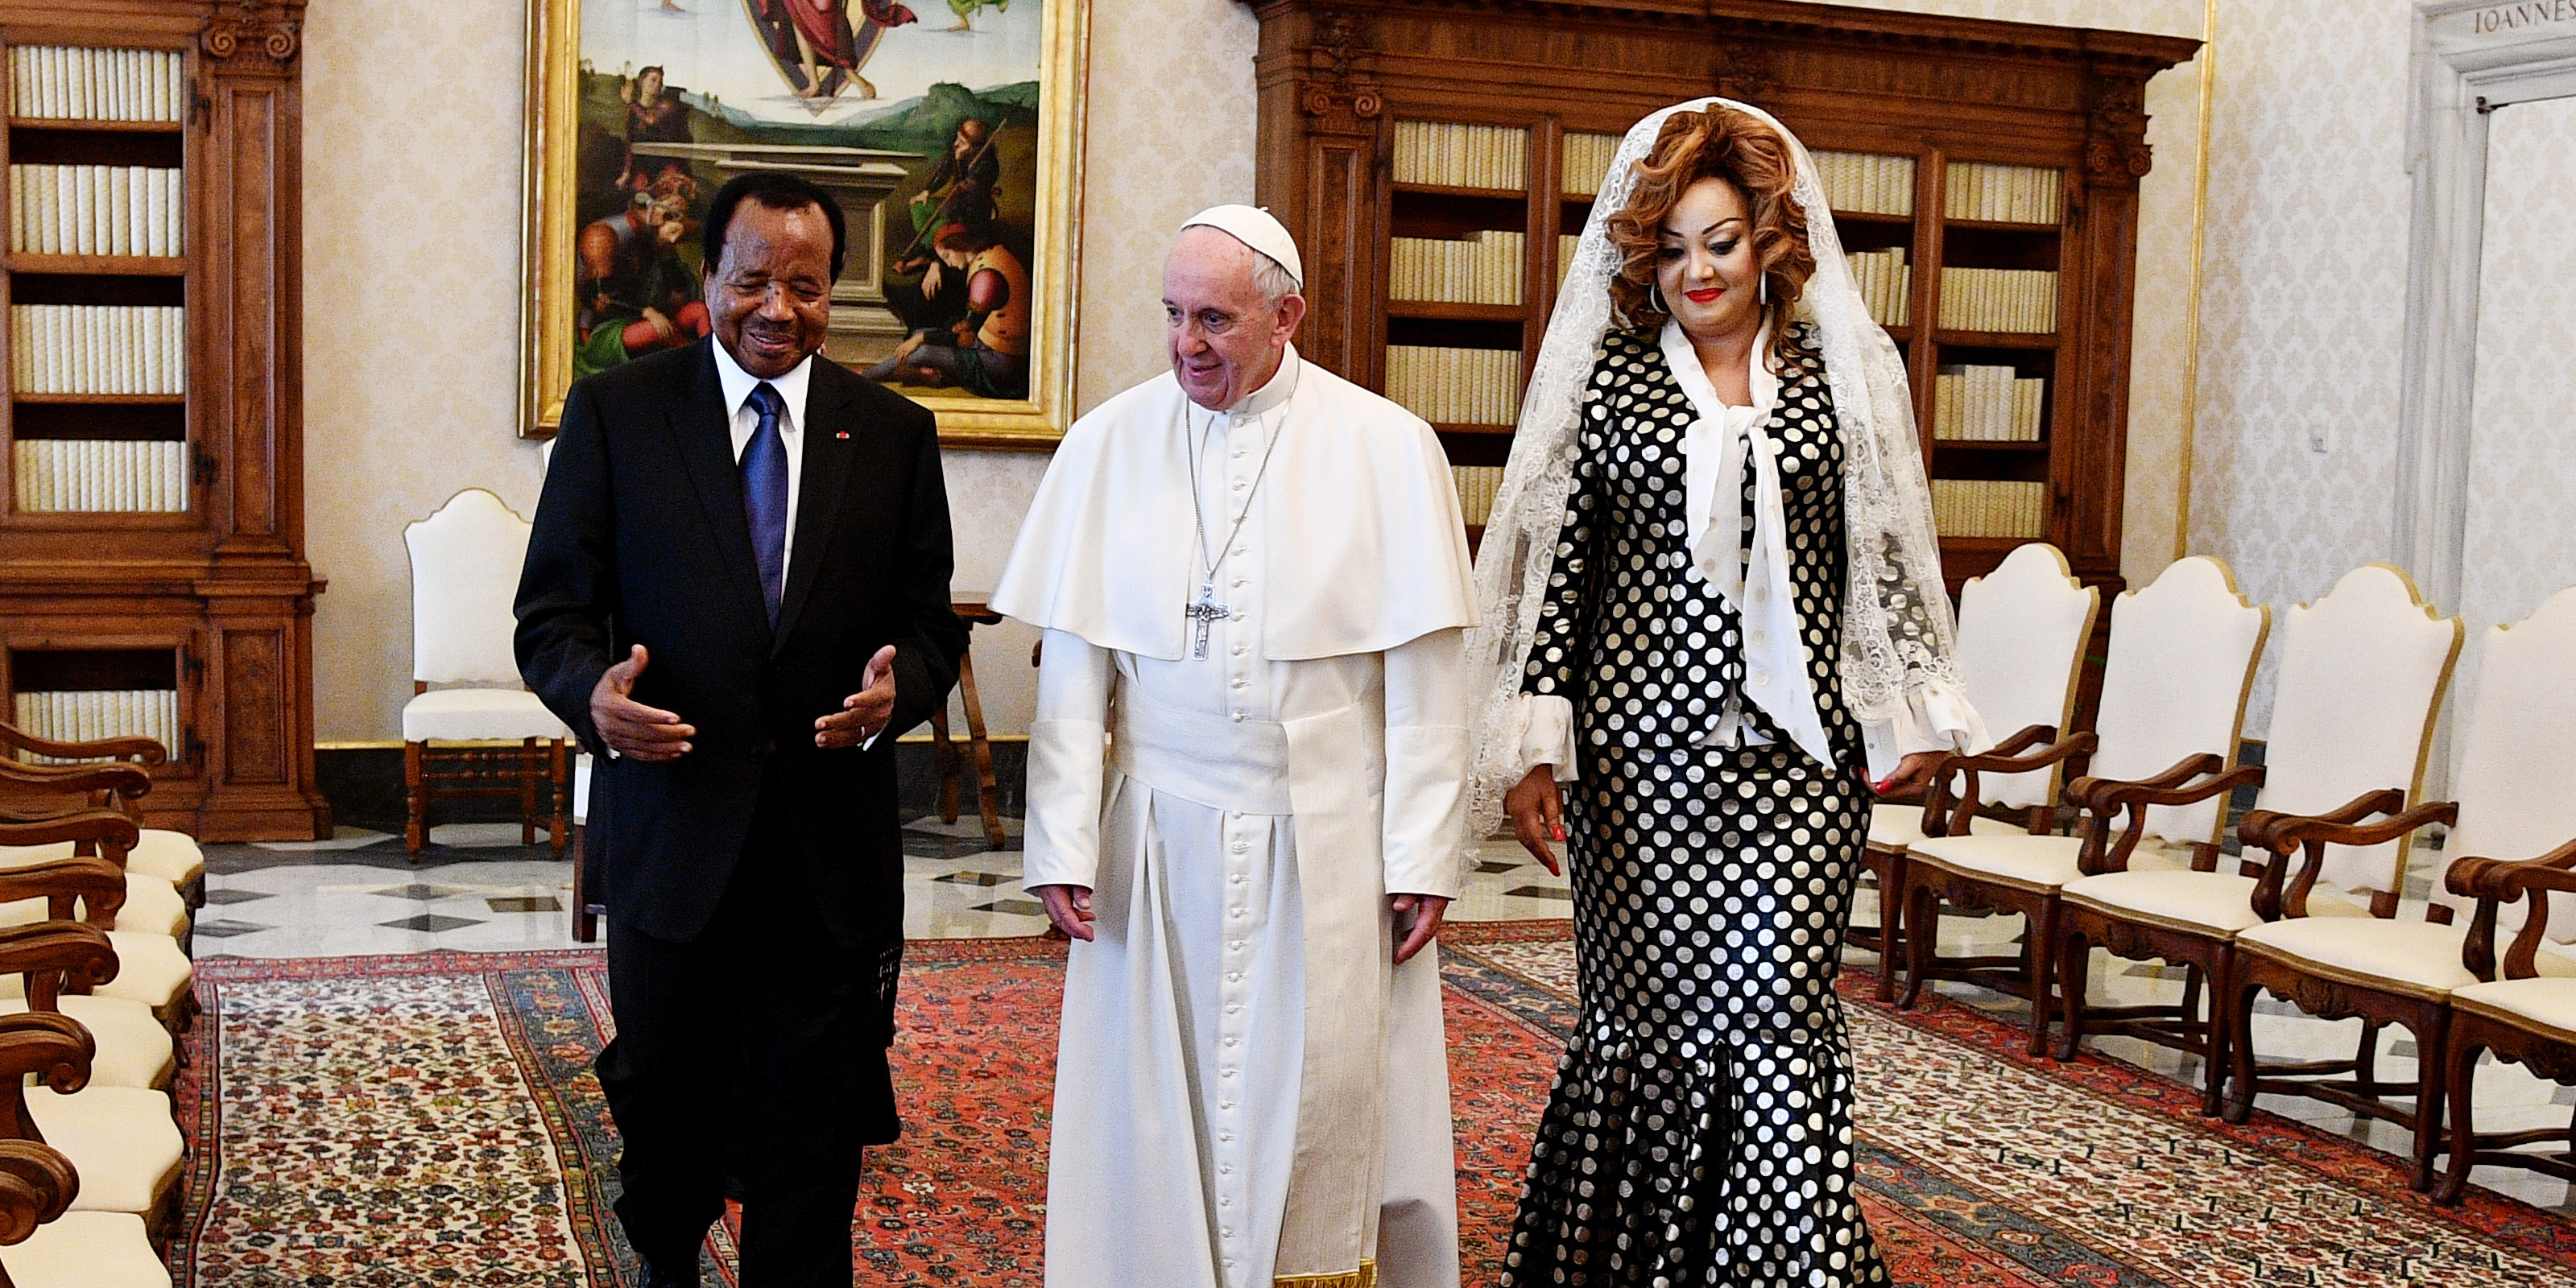 CAMEROON PRESIDENT POPE